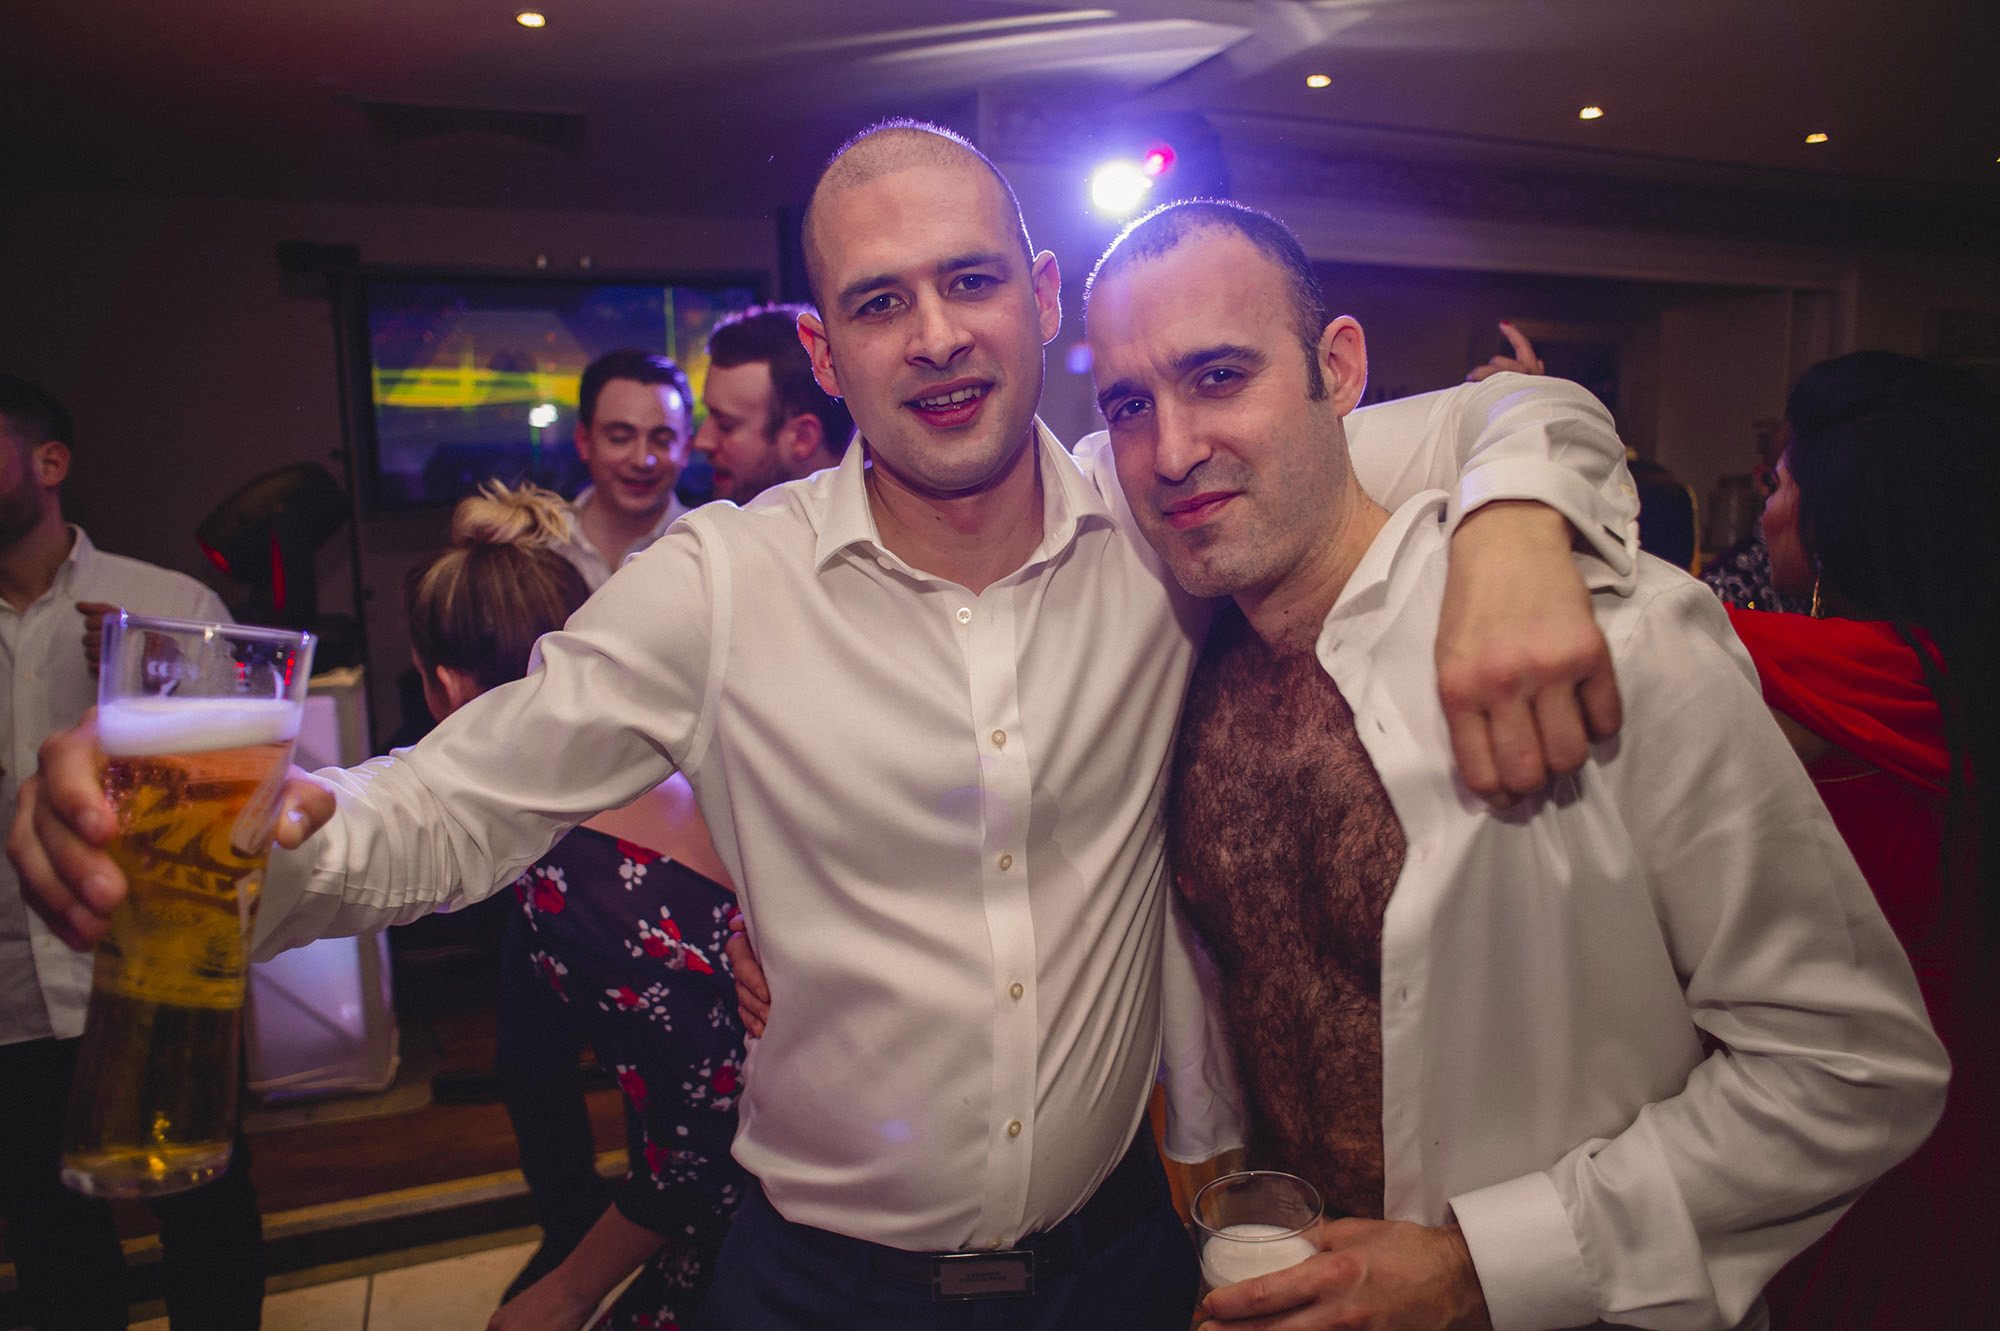 friends partying at wedding reception